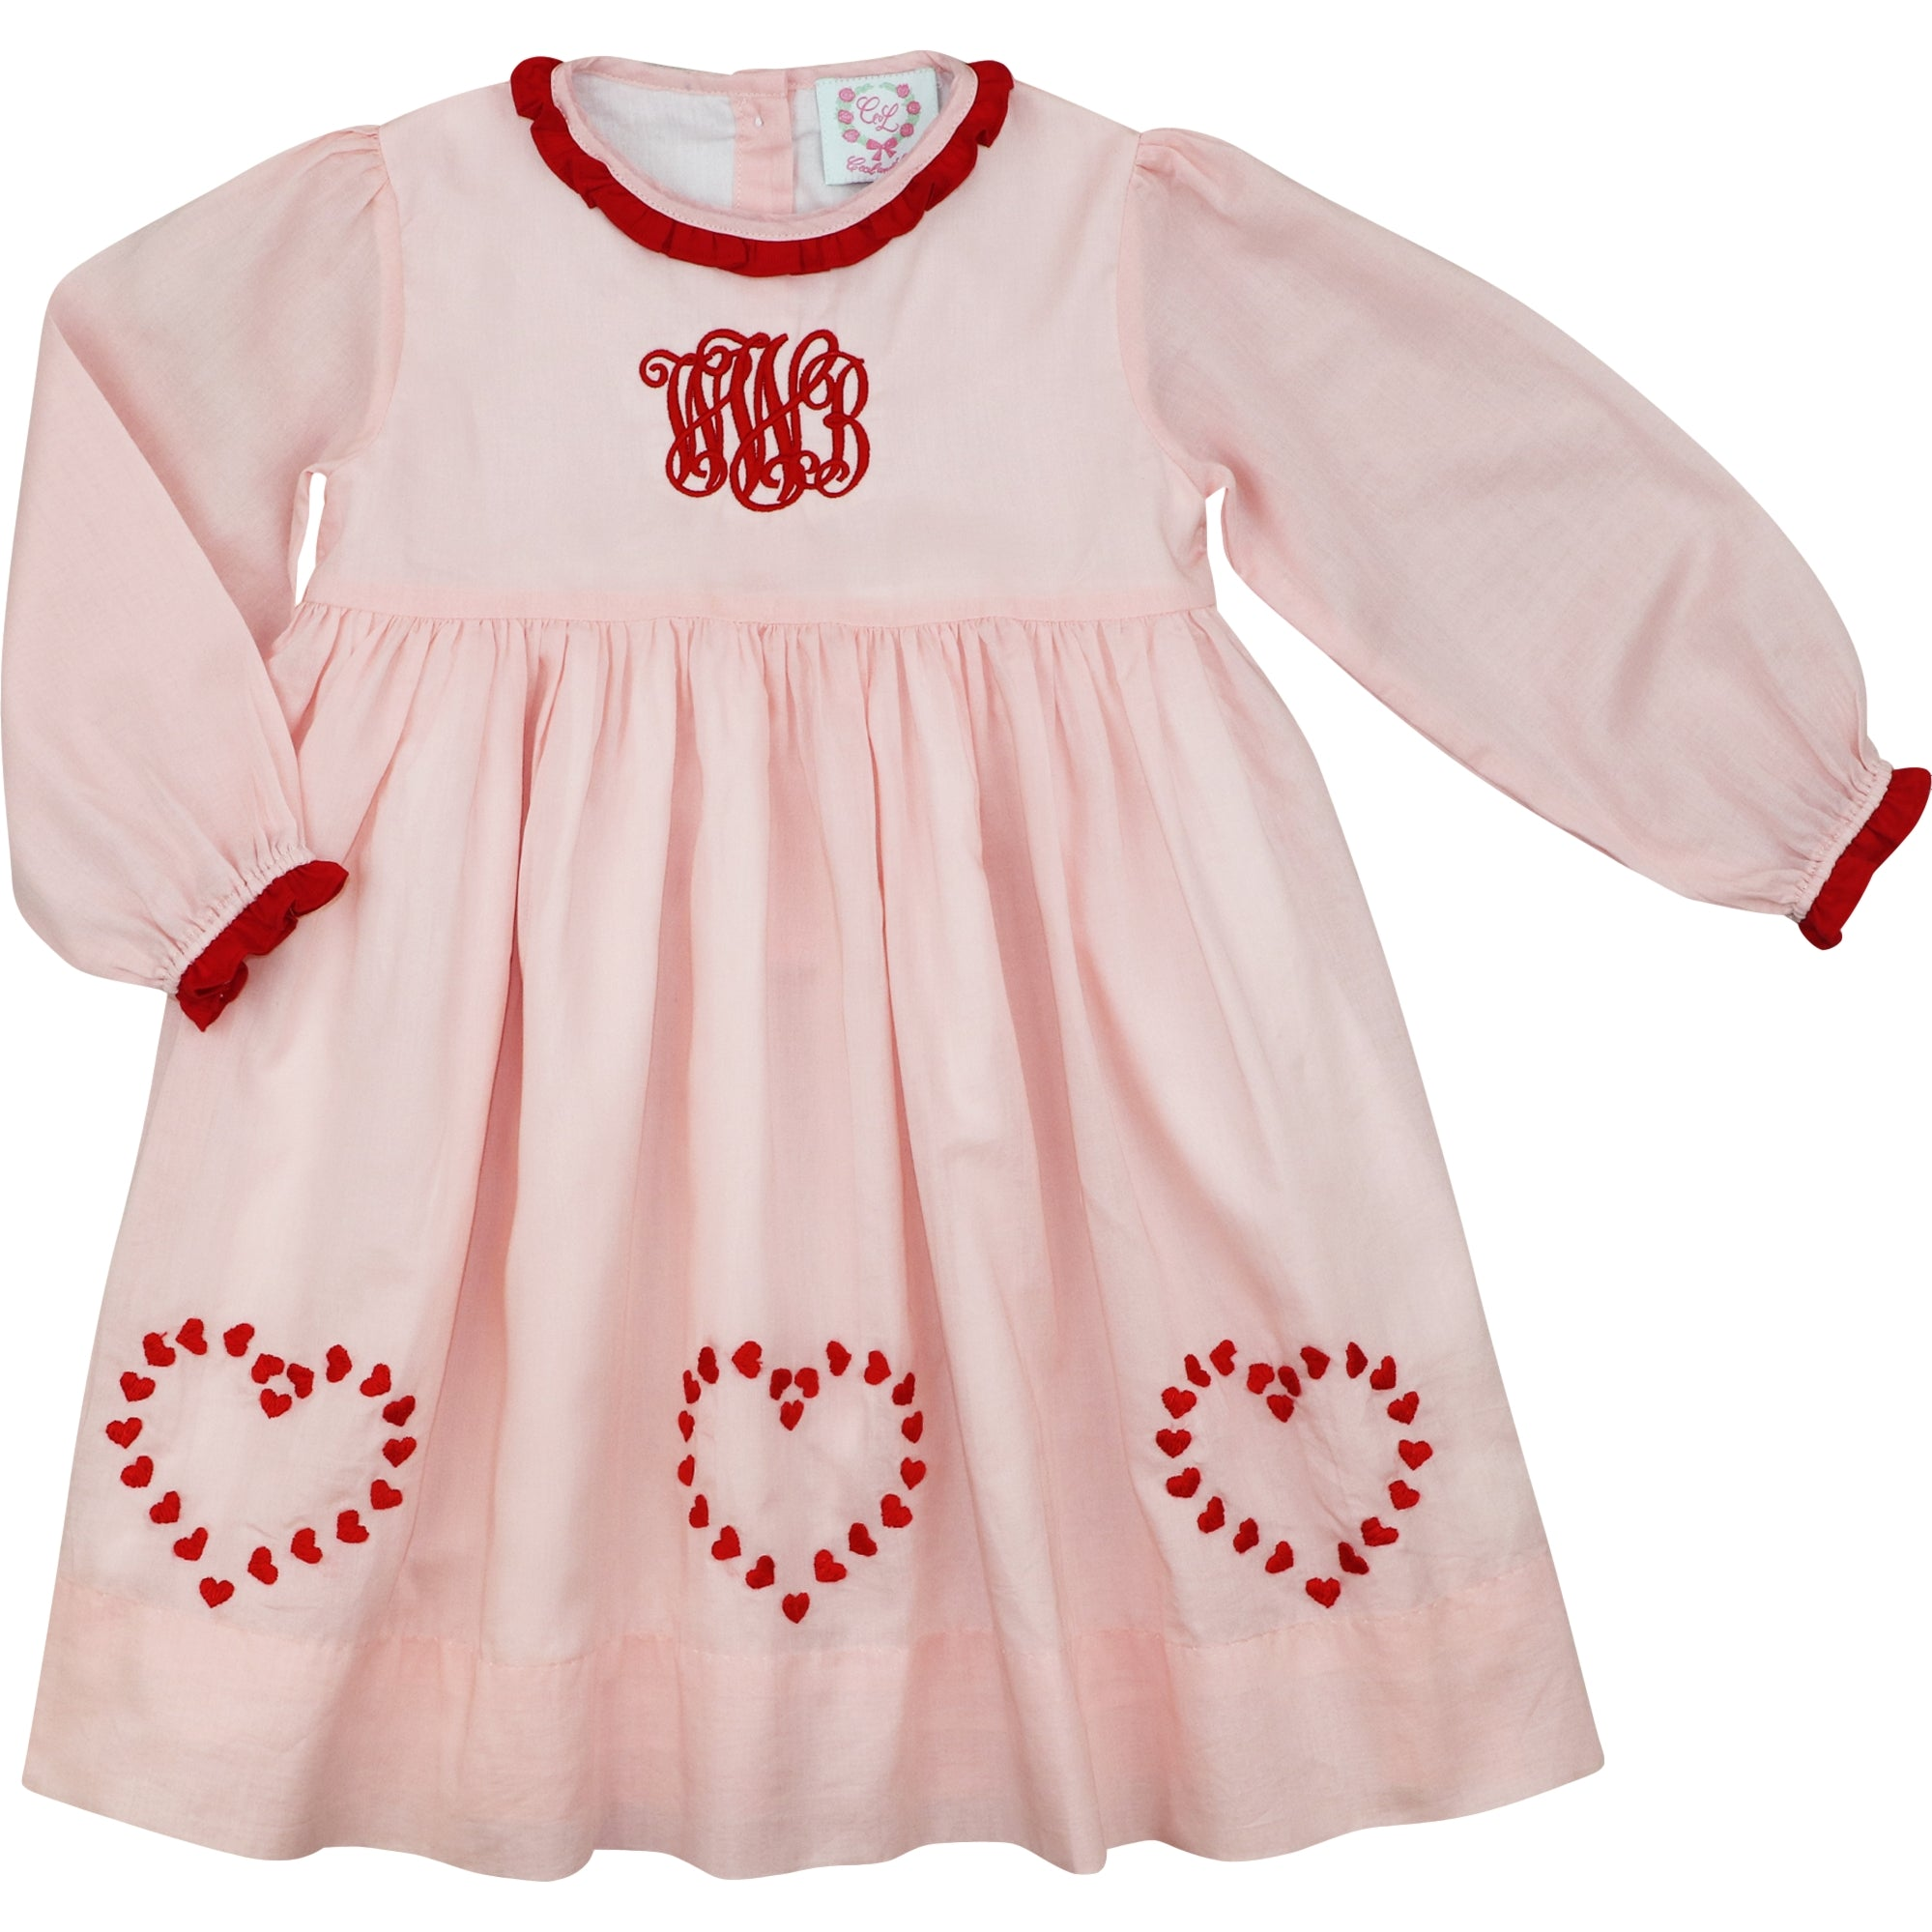 Pink Knit and Red Embroidered Hearts Dress